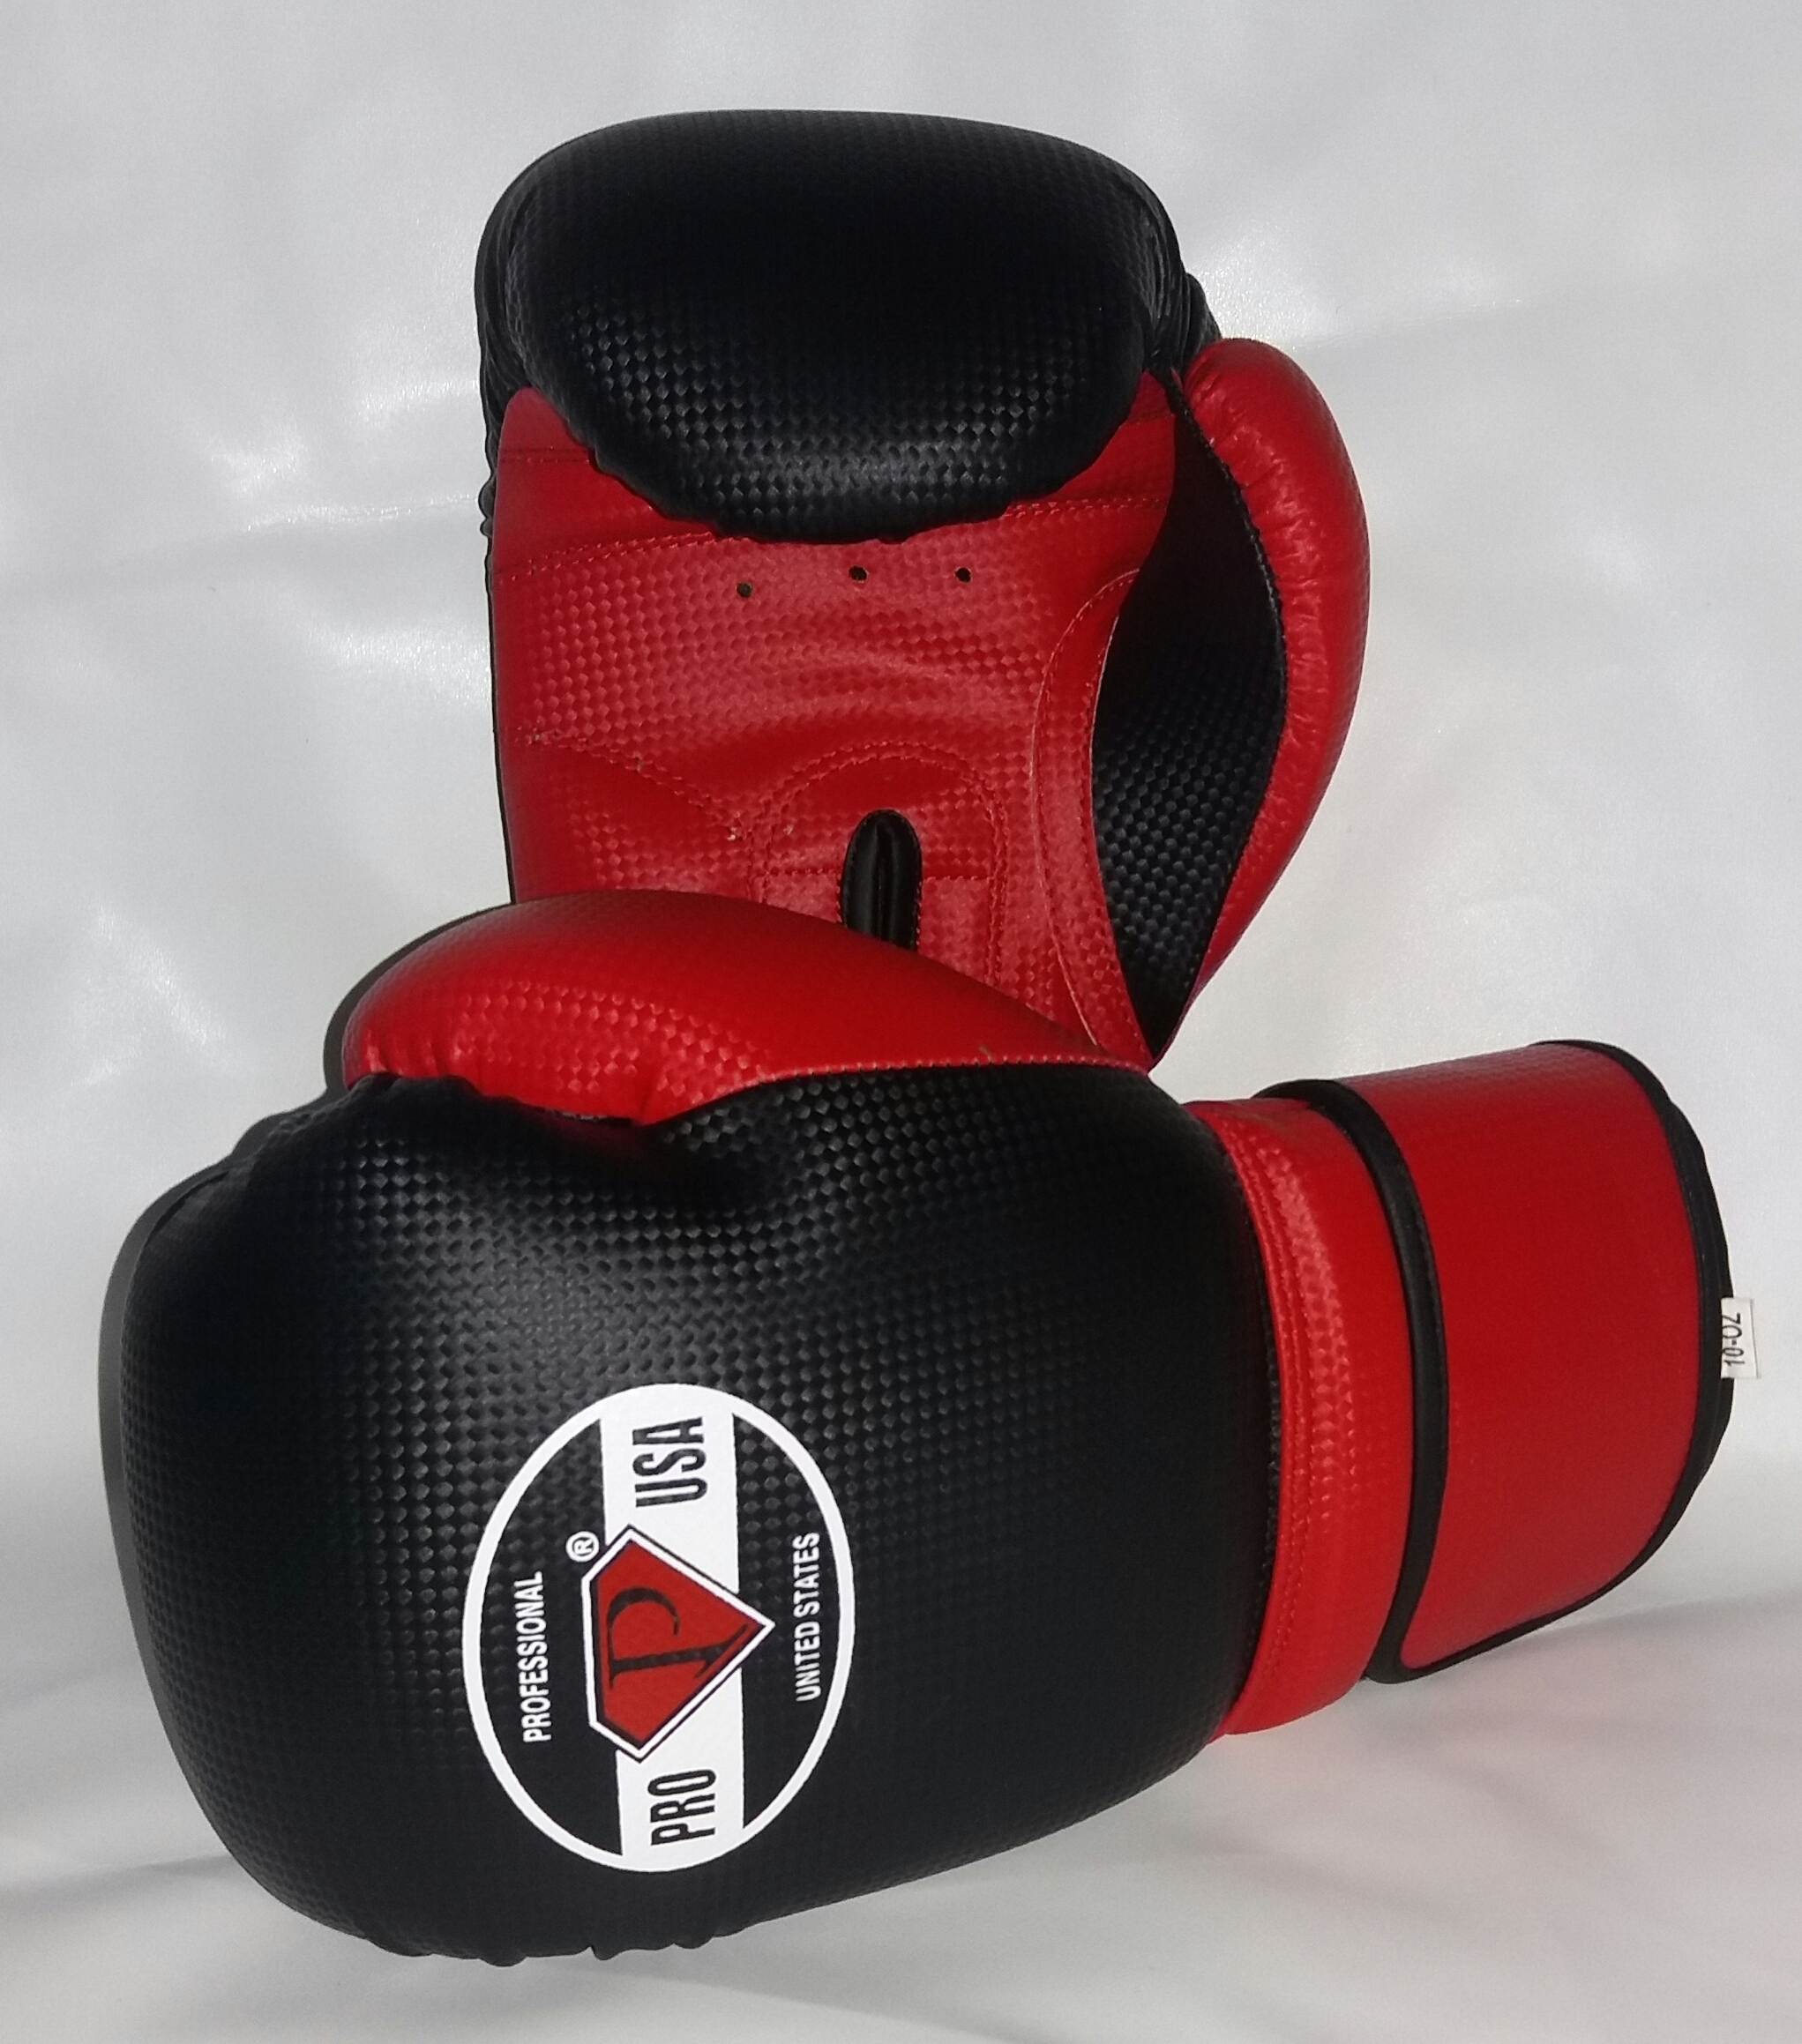 PRO USA BOXING GLOVES BLACK/RED